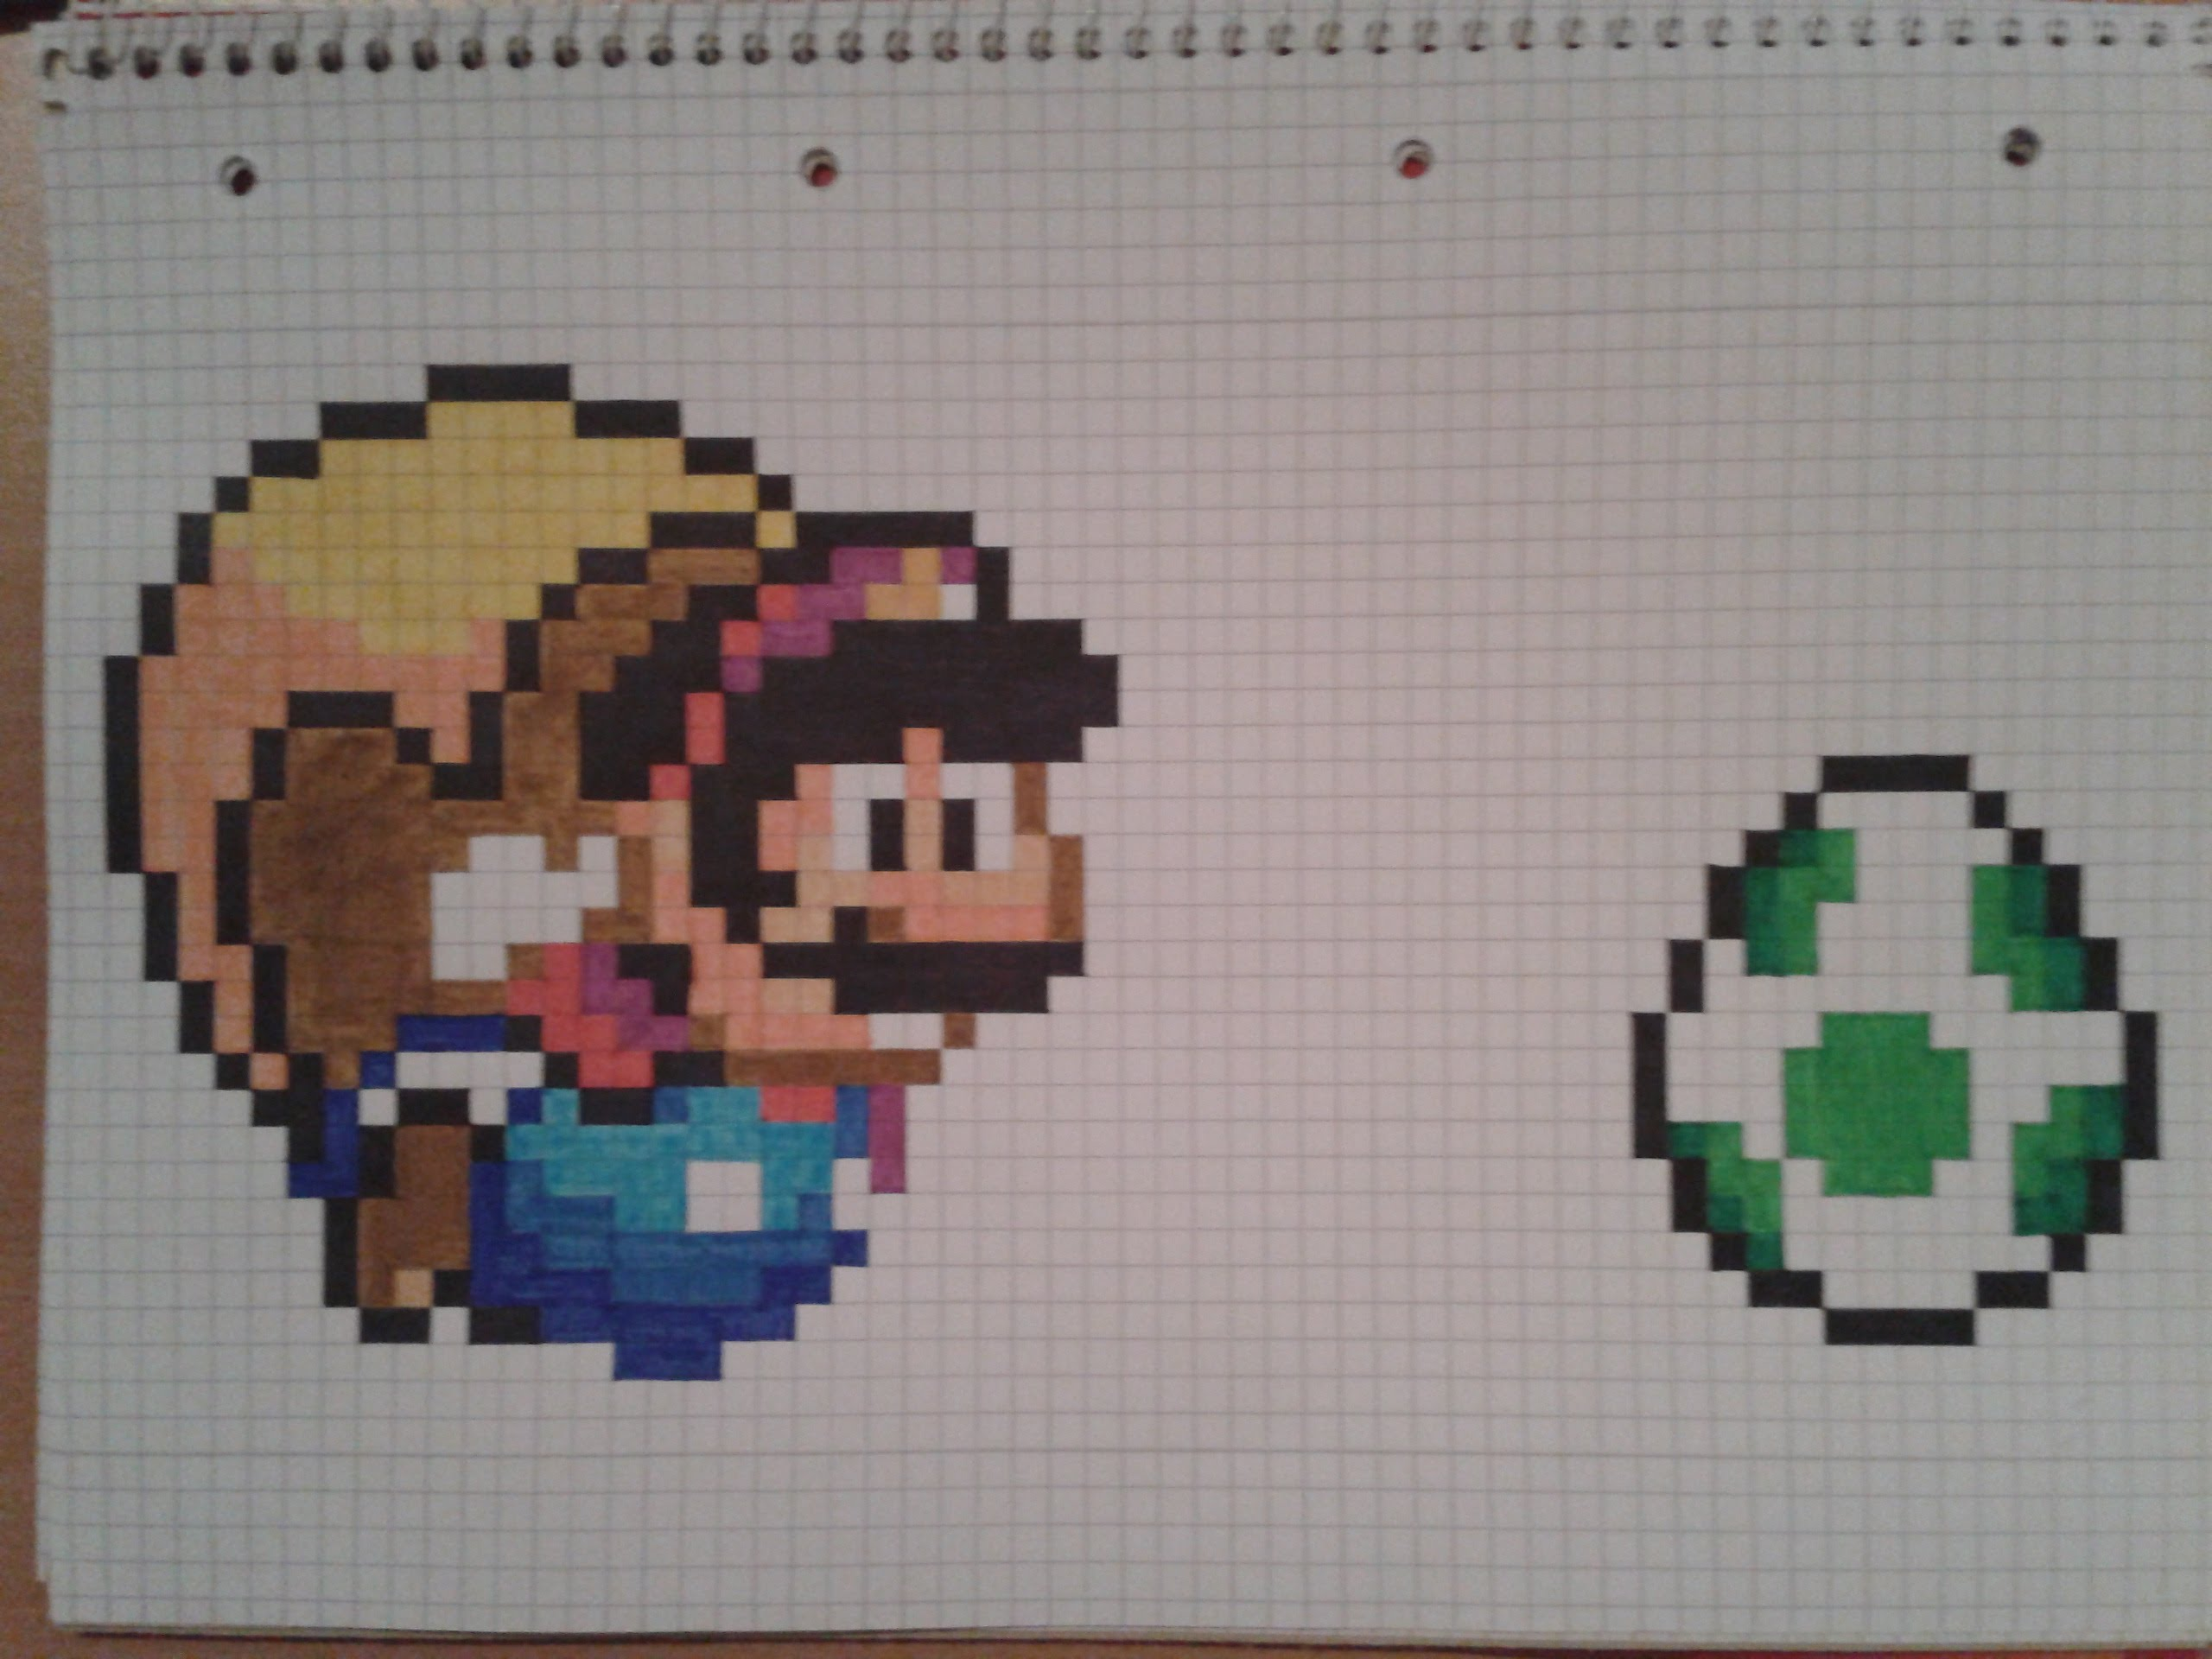 Drawn pixel art graph paper Flying Cape draw to: green